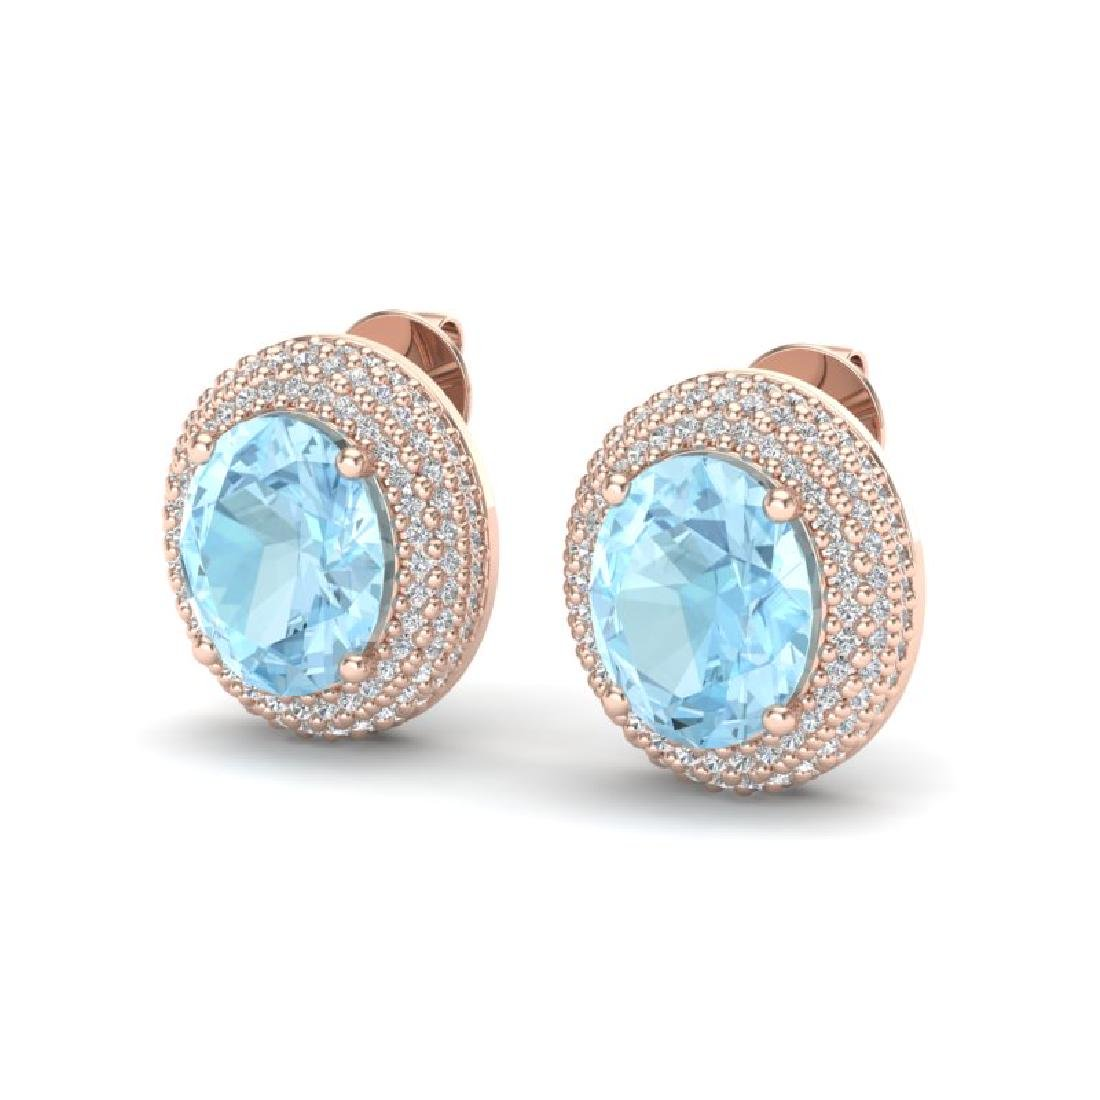 8 CTW Aquamarine & Micro Pave VS/SI Diamond Earrings